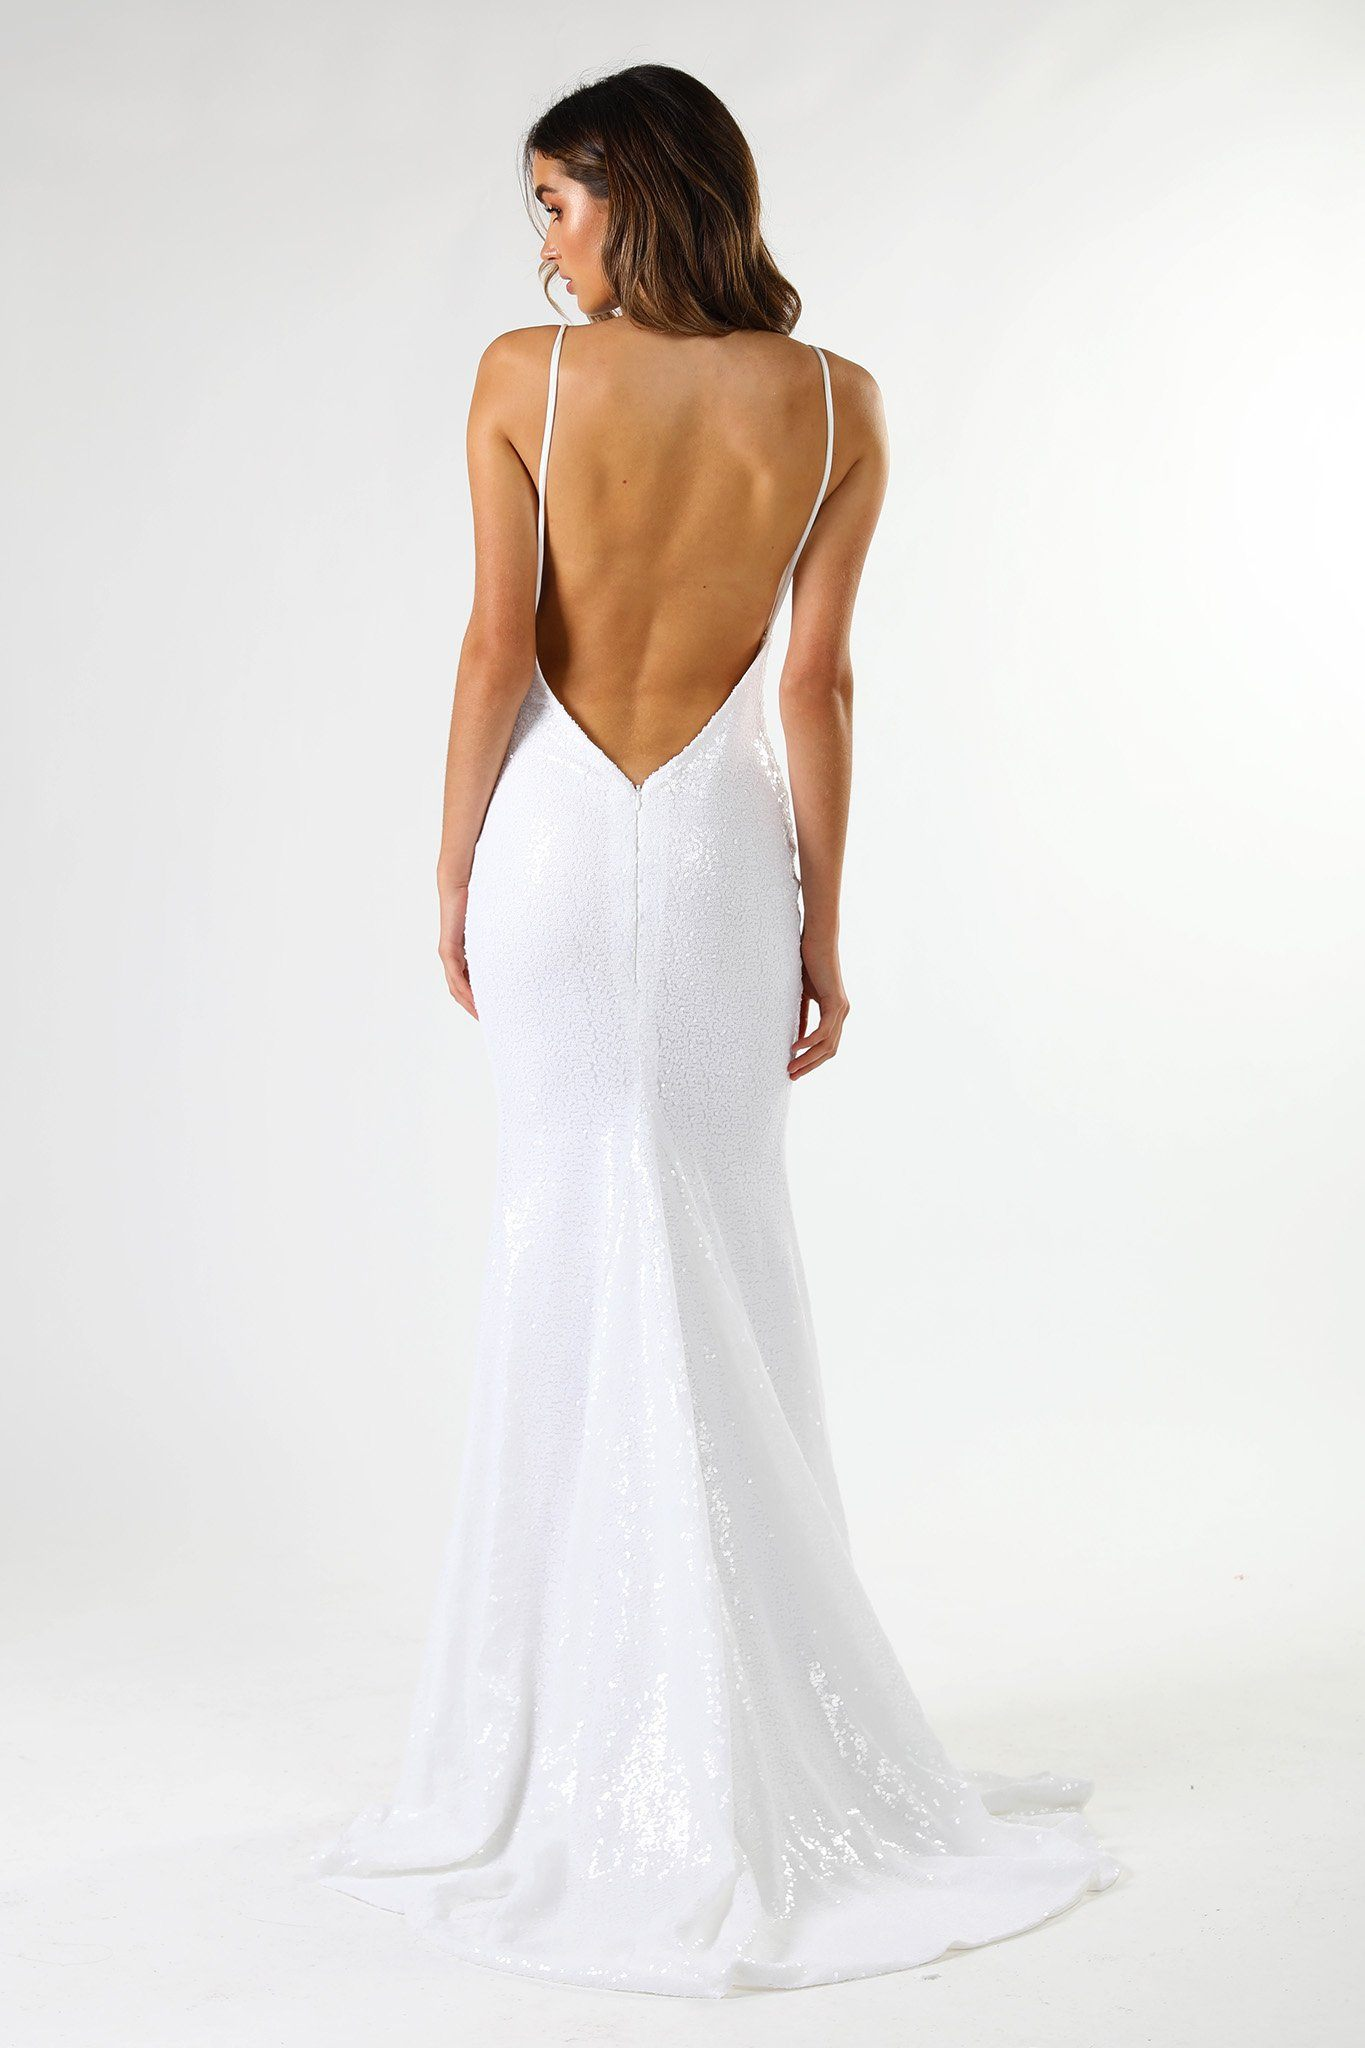 ... V Shaped Backless Design of Fitted White Sequin Formal Wedding  Sleeveless Gown featuring Deep V Neck cc76b0554